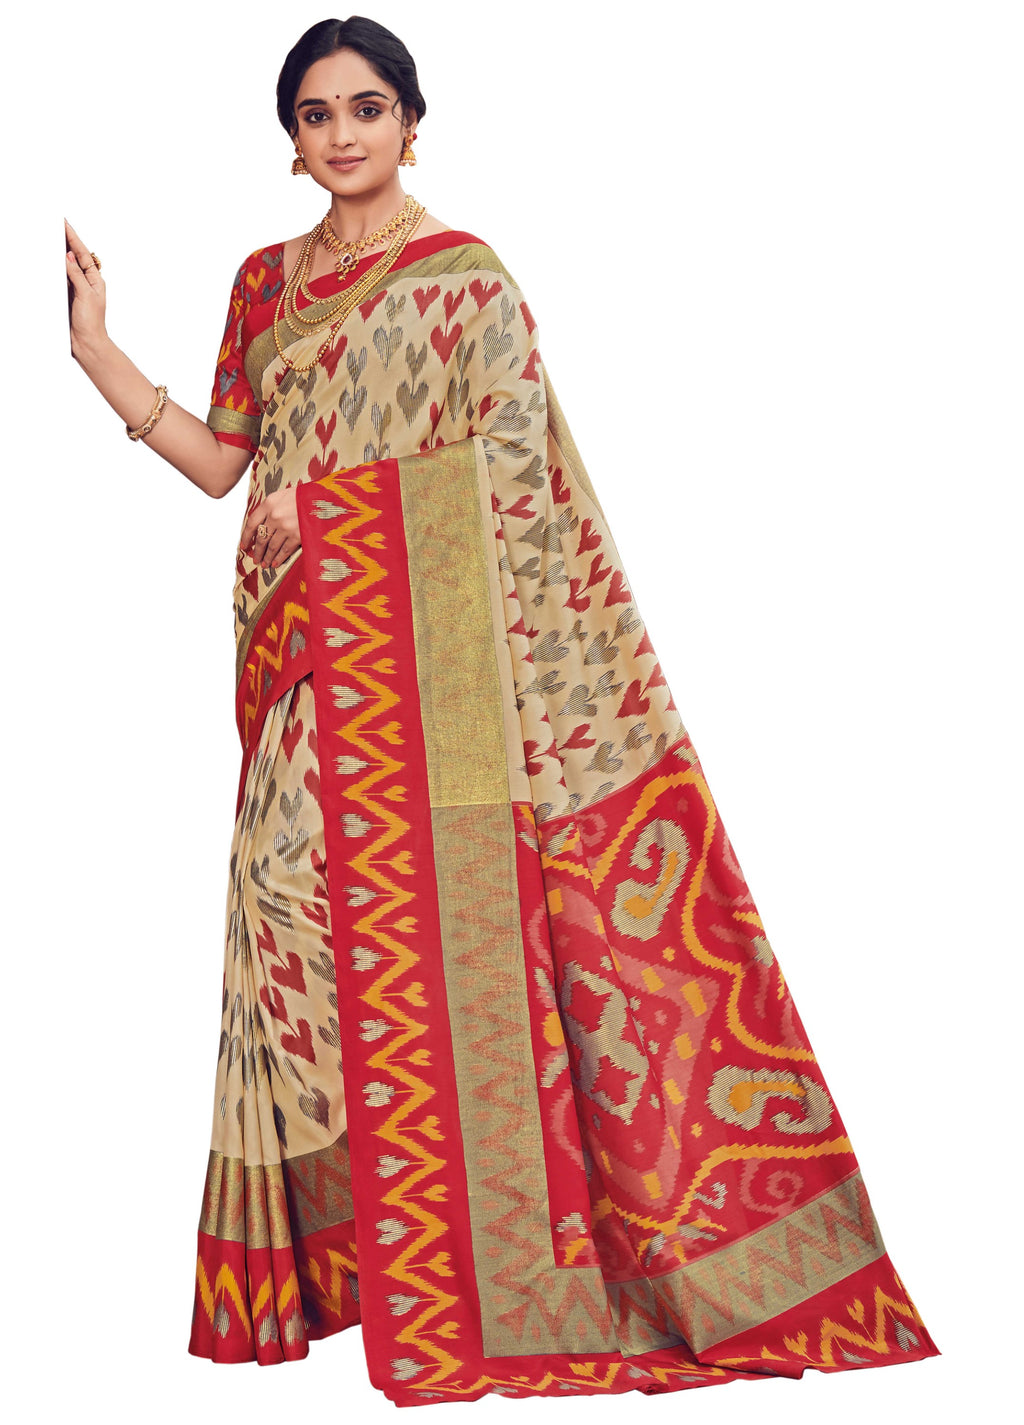 Cream & Red Color Bhagalpuri Festive & Party Wear Sarees NYF-8663